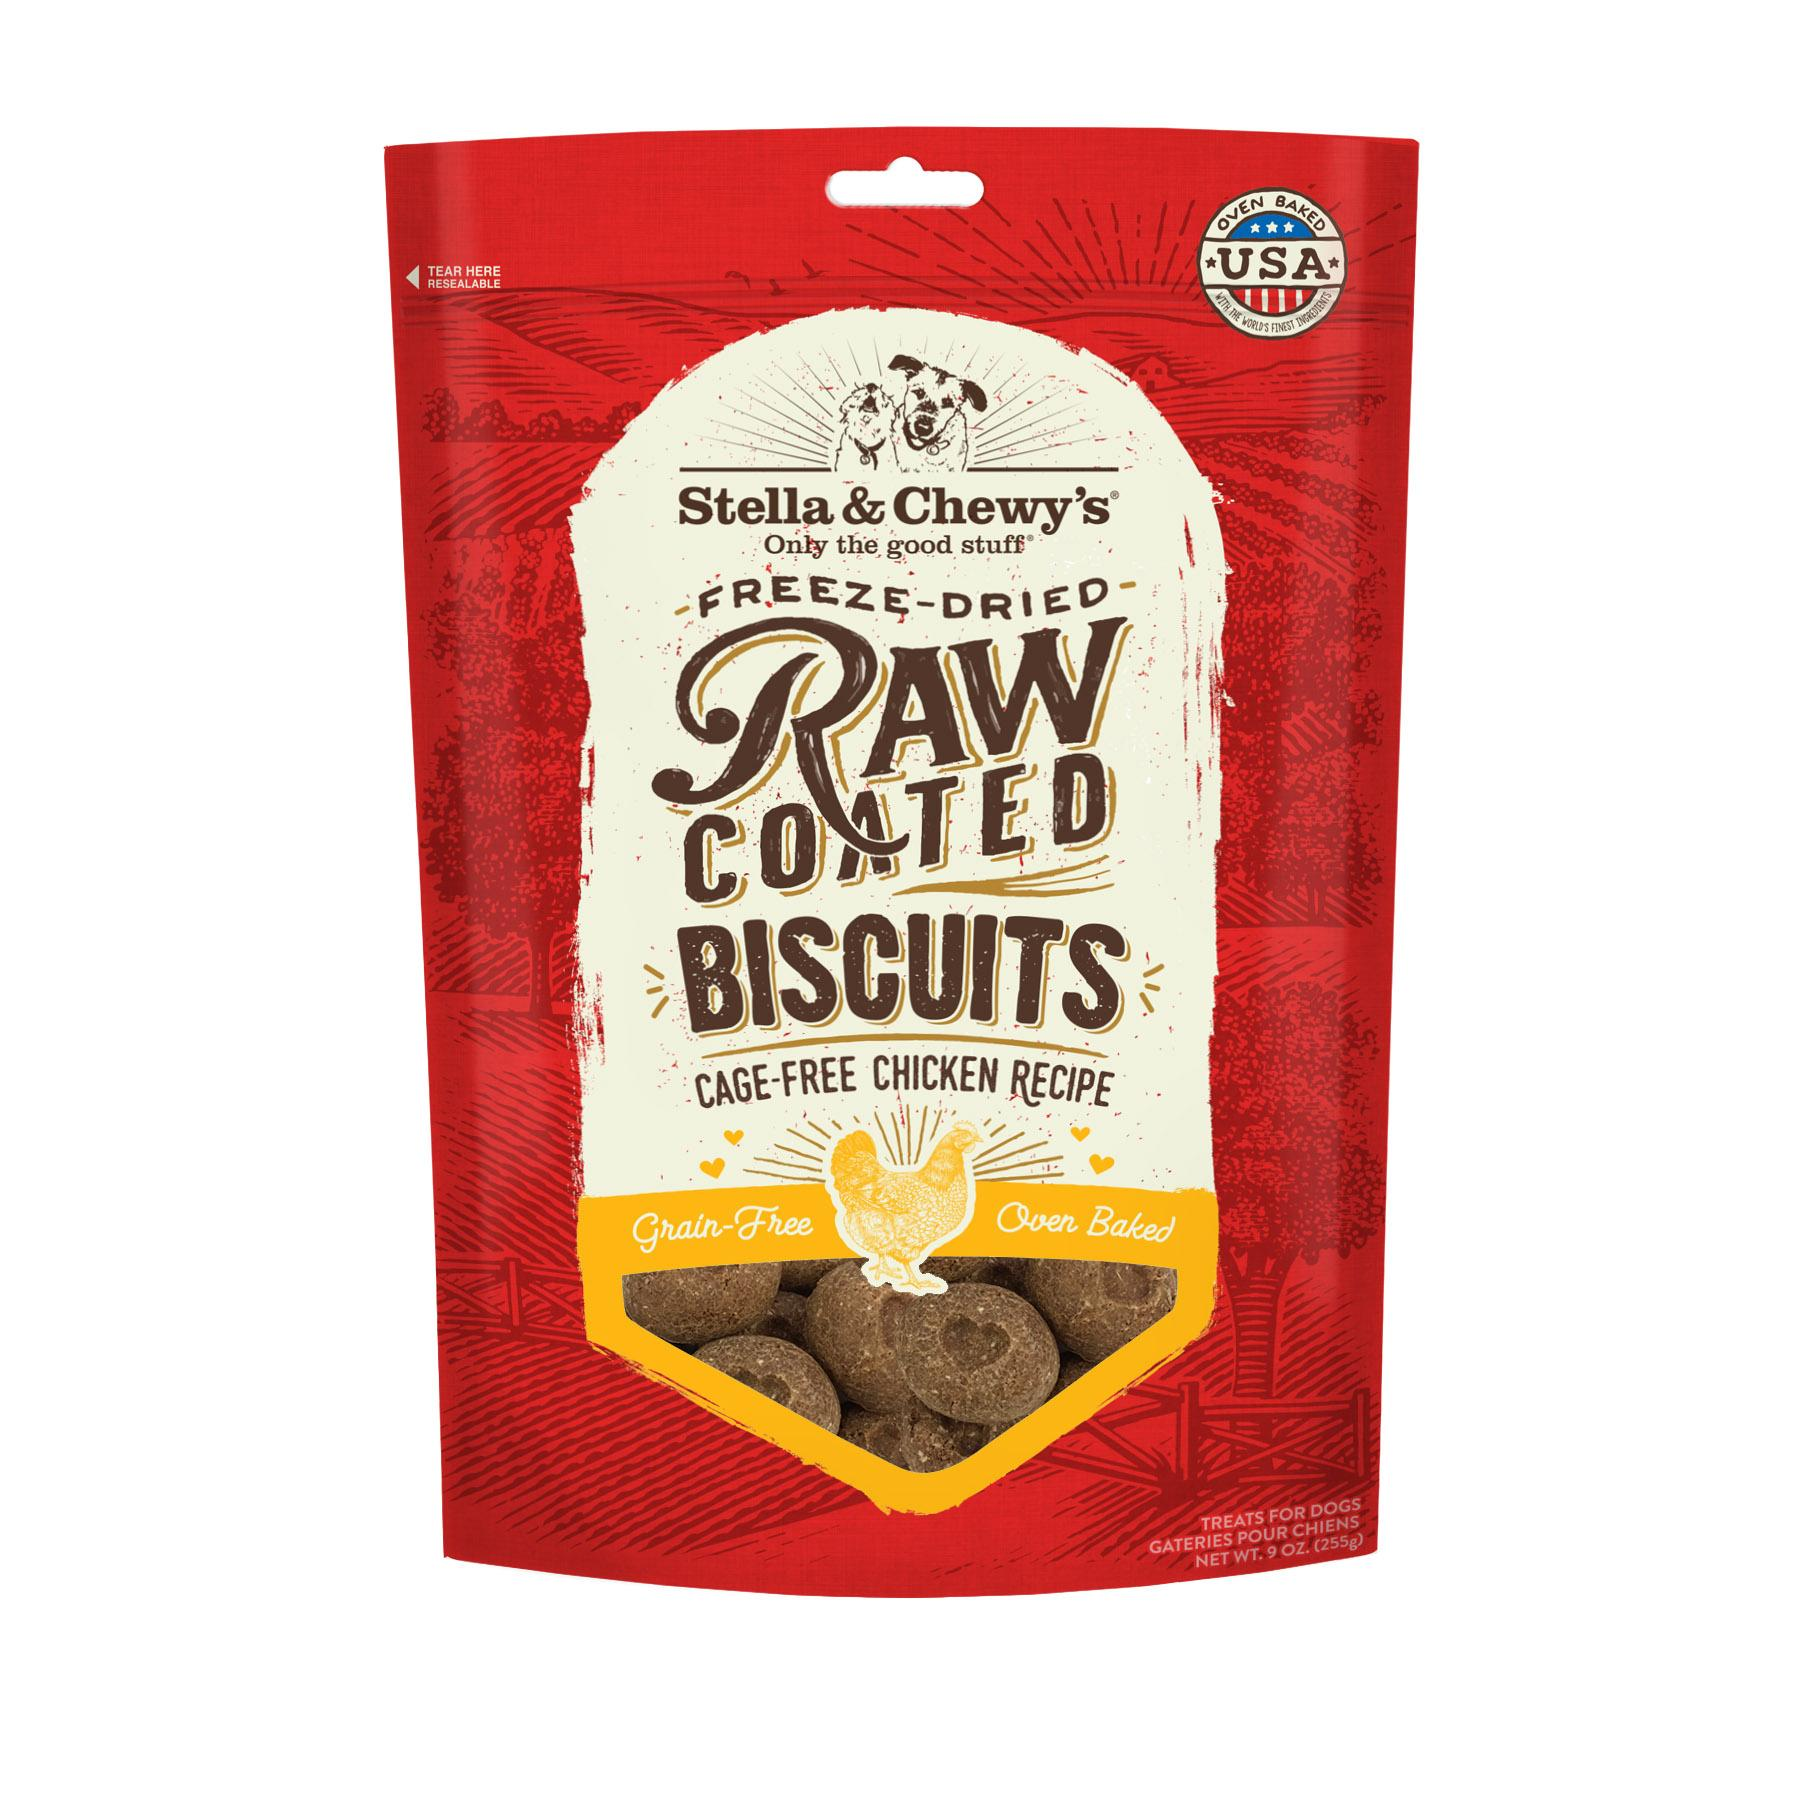 Stella & Chewy's Raw Coated Biscuits Cage-Free Chicken Recipe Dog Treats, 9-oz (Size: 9-oz) Image